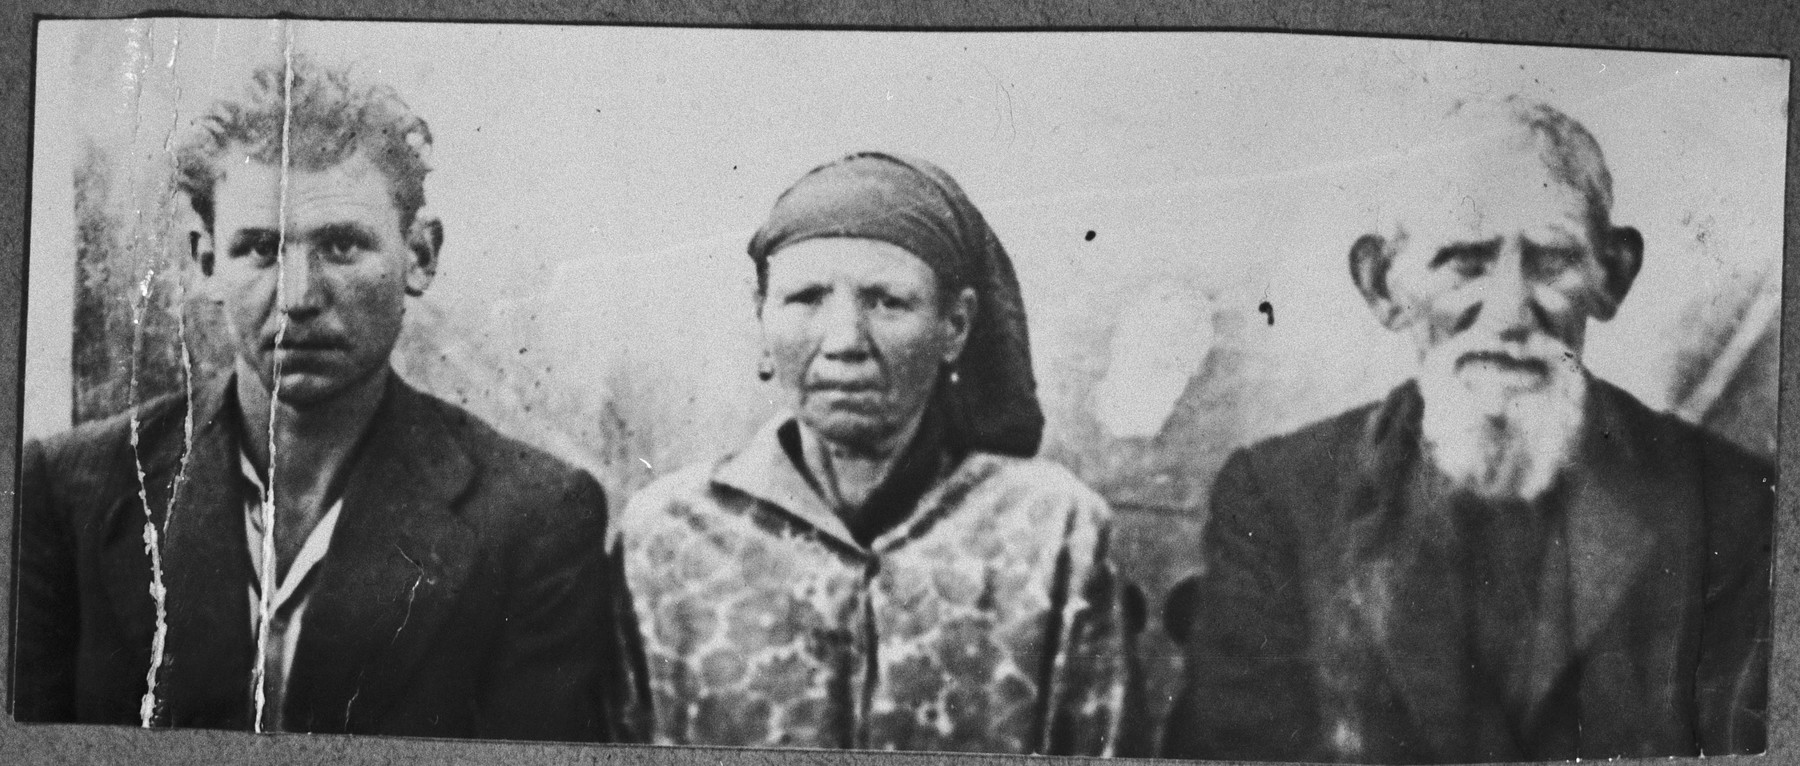 Portrait of Samuel Kamchi, [his wife], Suncho, and his son, Konorti.  Samuel was a butcher and Konorti, a laborer.  They lived at Krstitsa 16 in Bitola.